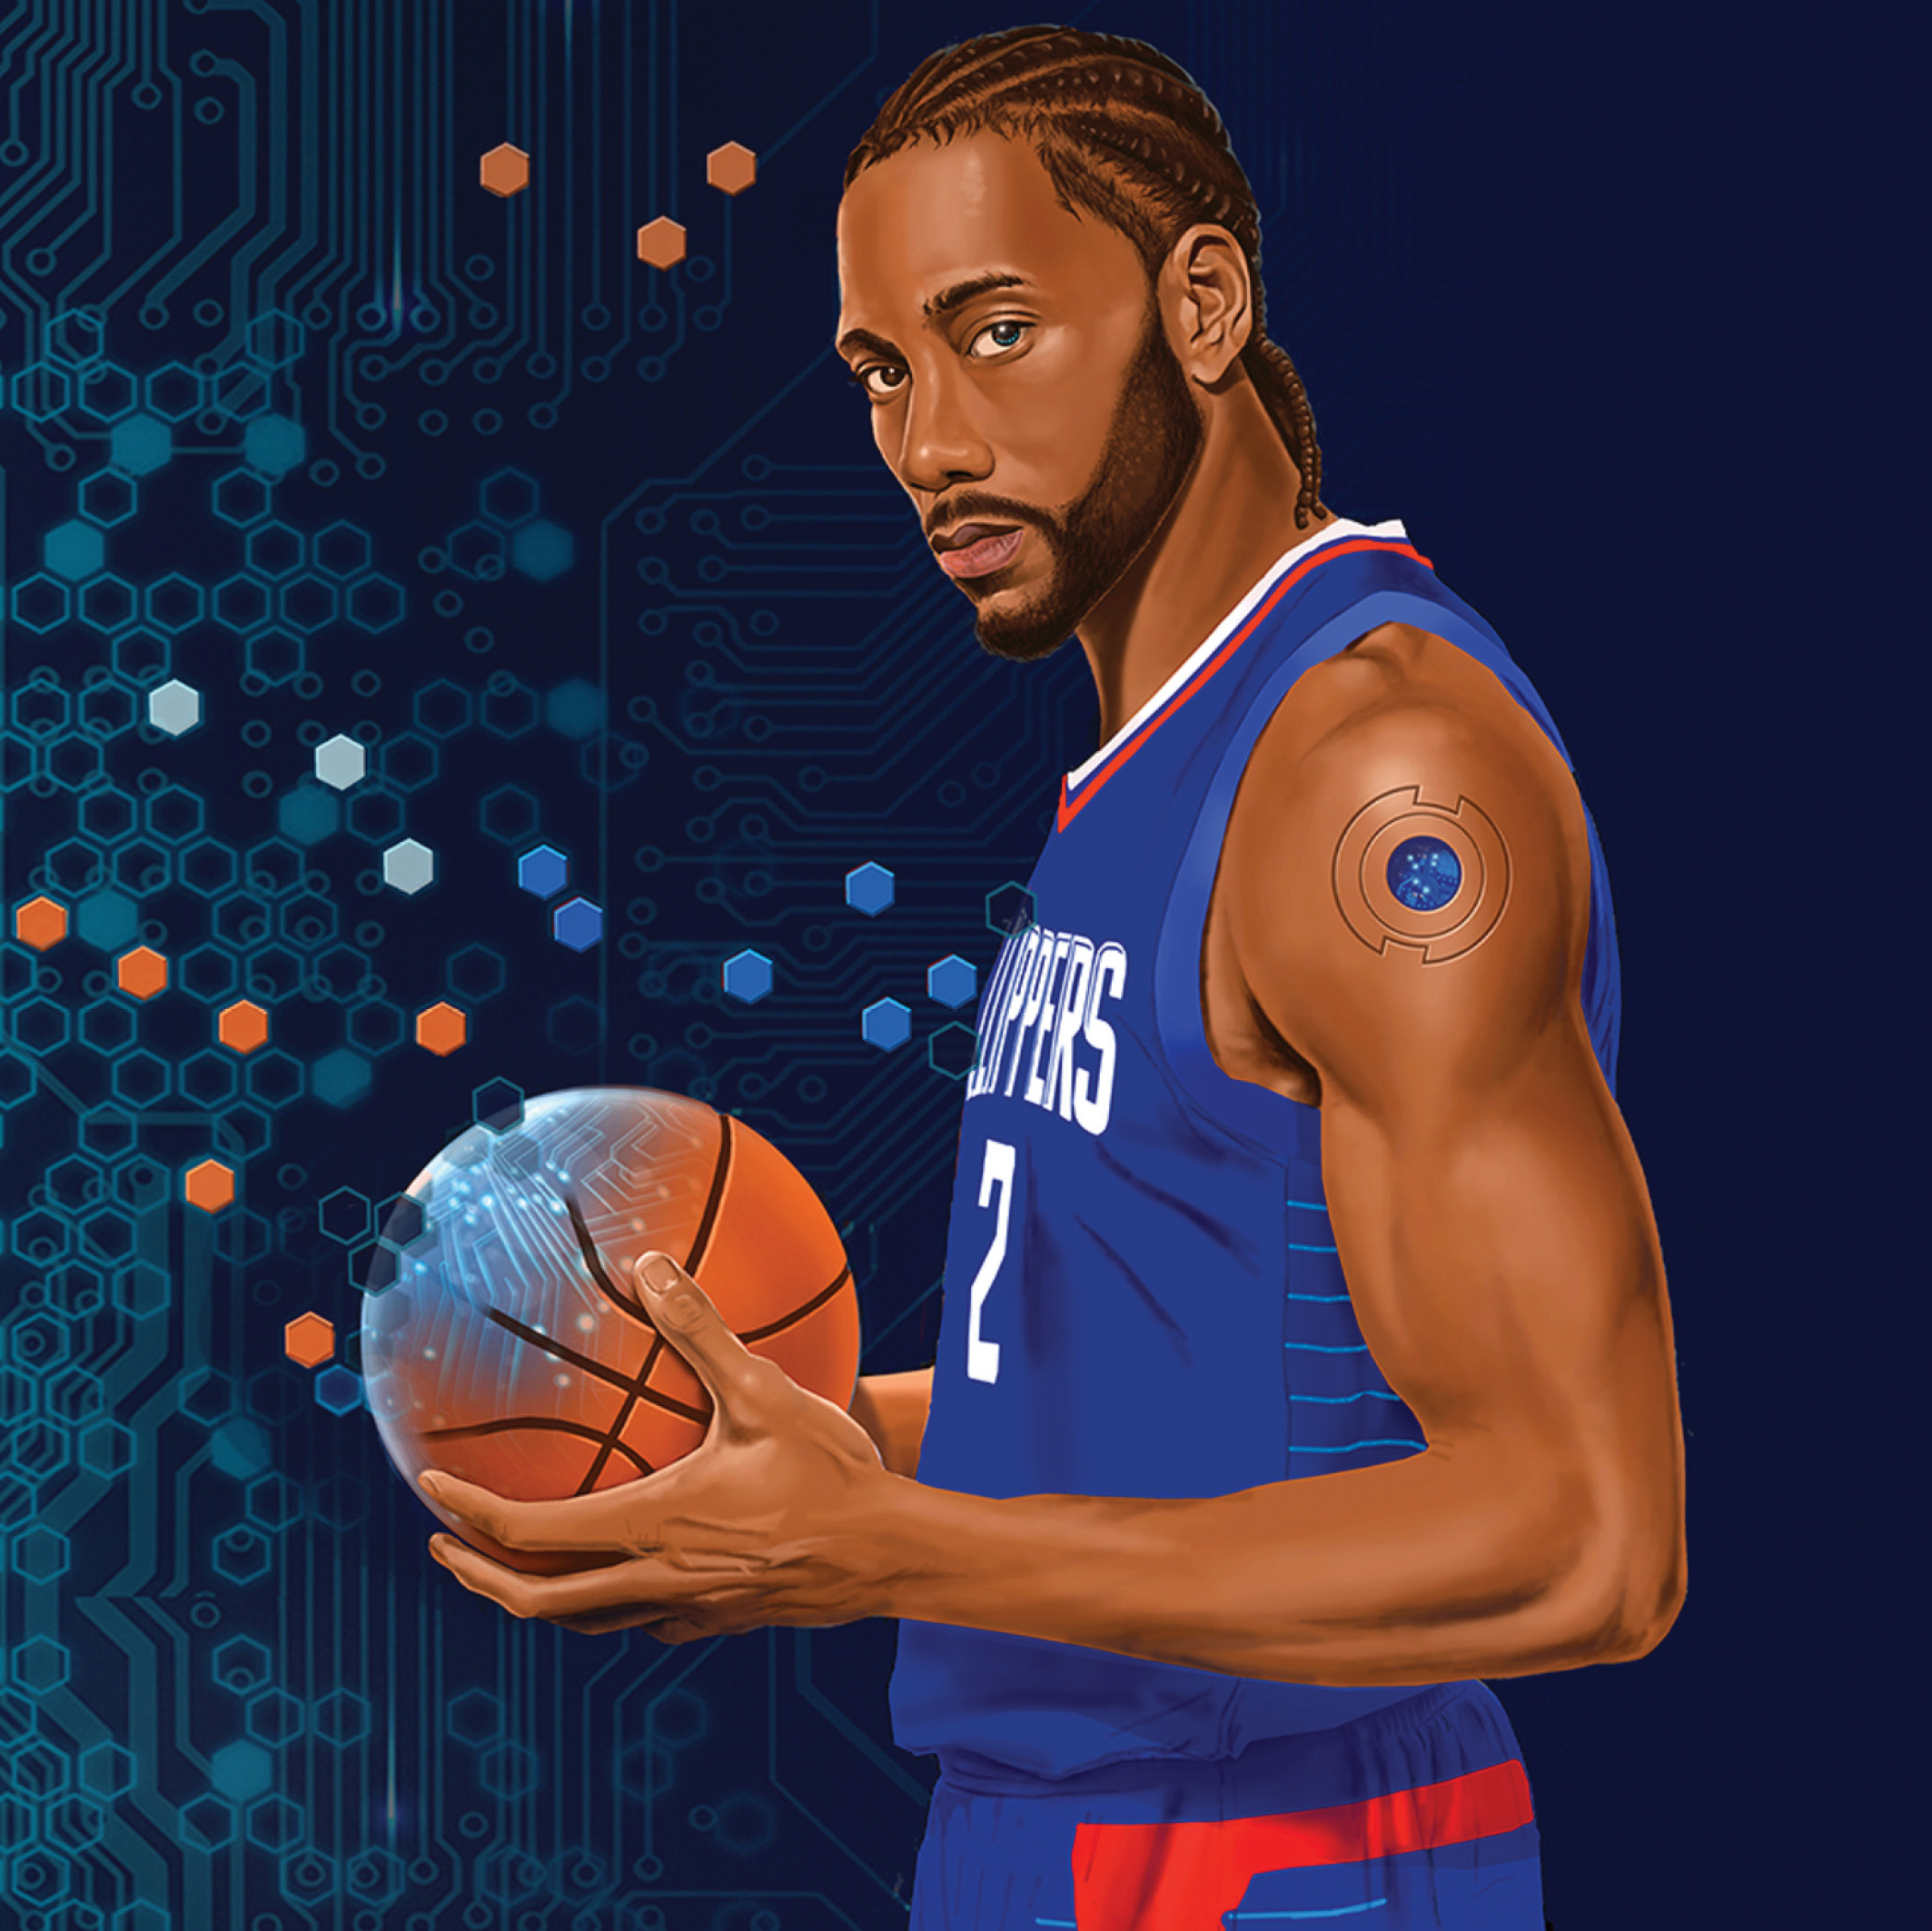 Kawhi Leonard stands with  a basketball. The basketball and Kawhi's shoulder reveal circuitry below, with additional circuitry in the Clippers-blue background.